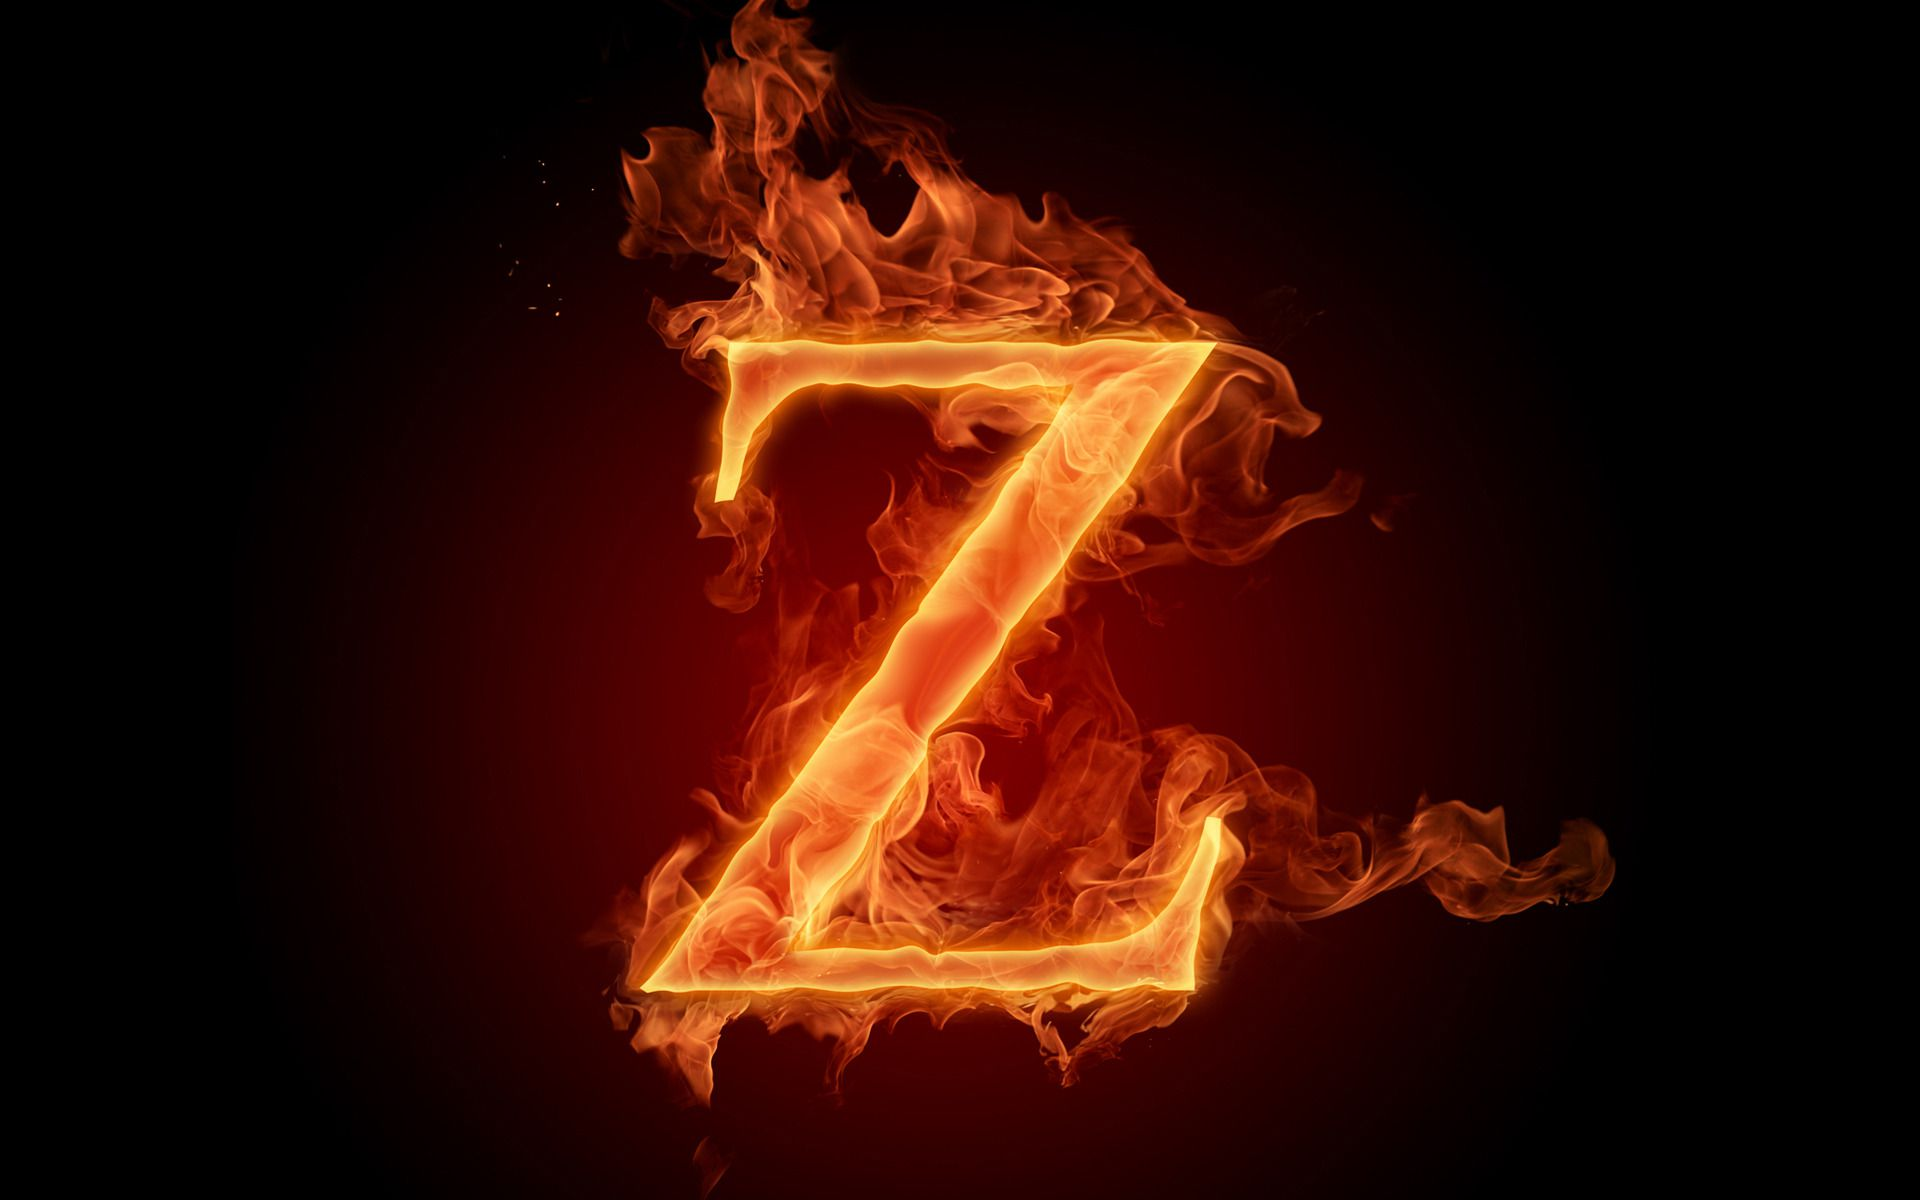 flaming z Full HD Wallpaper and Background Image ...